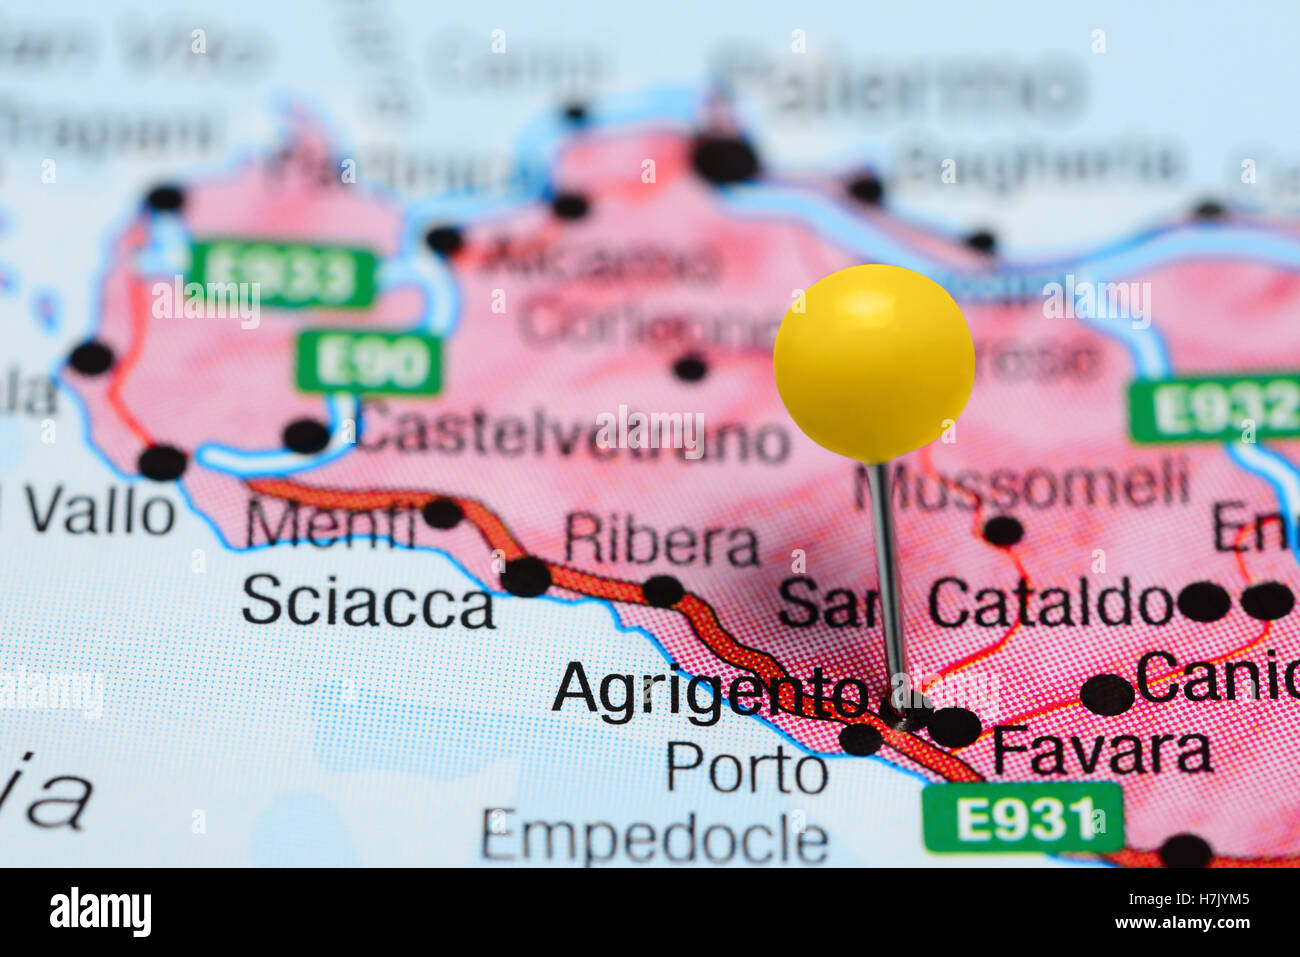 Agrigento Italy Map.Agrigento Pinned On A Map Of Italy Stock Photo 125192037 Alamy